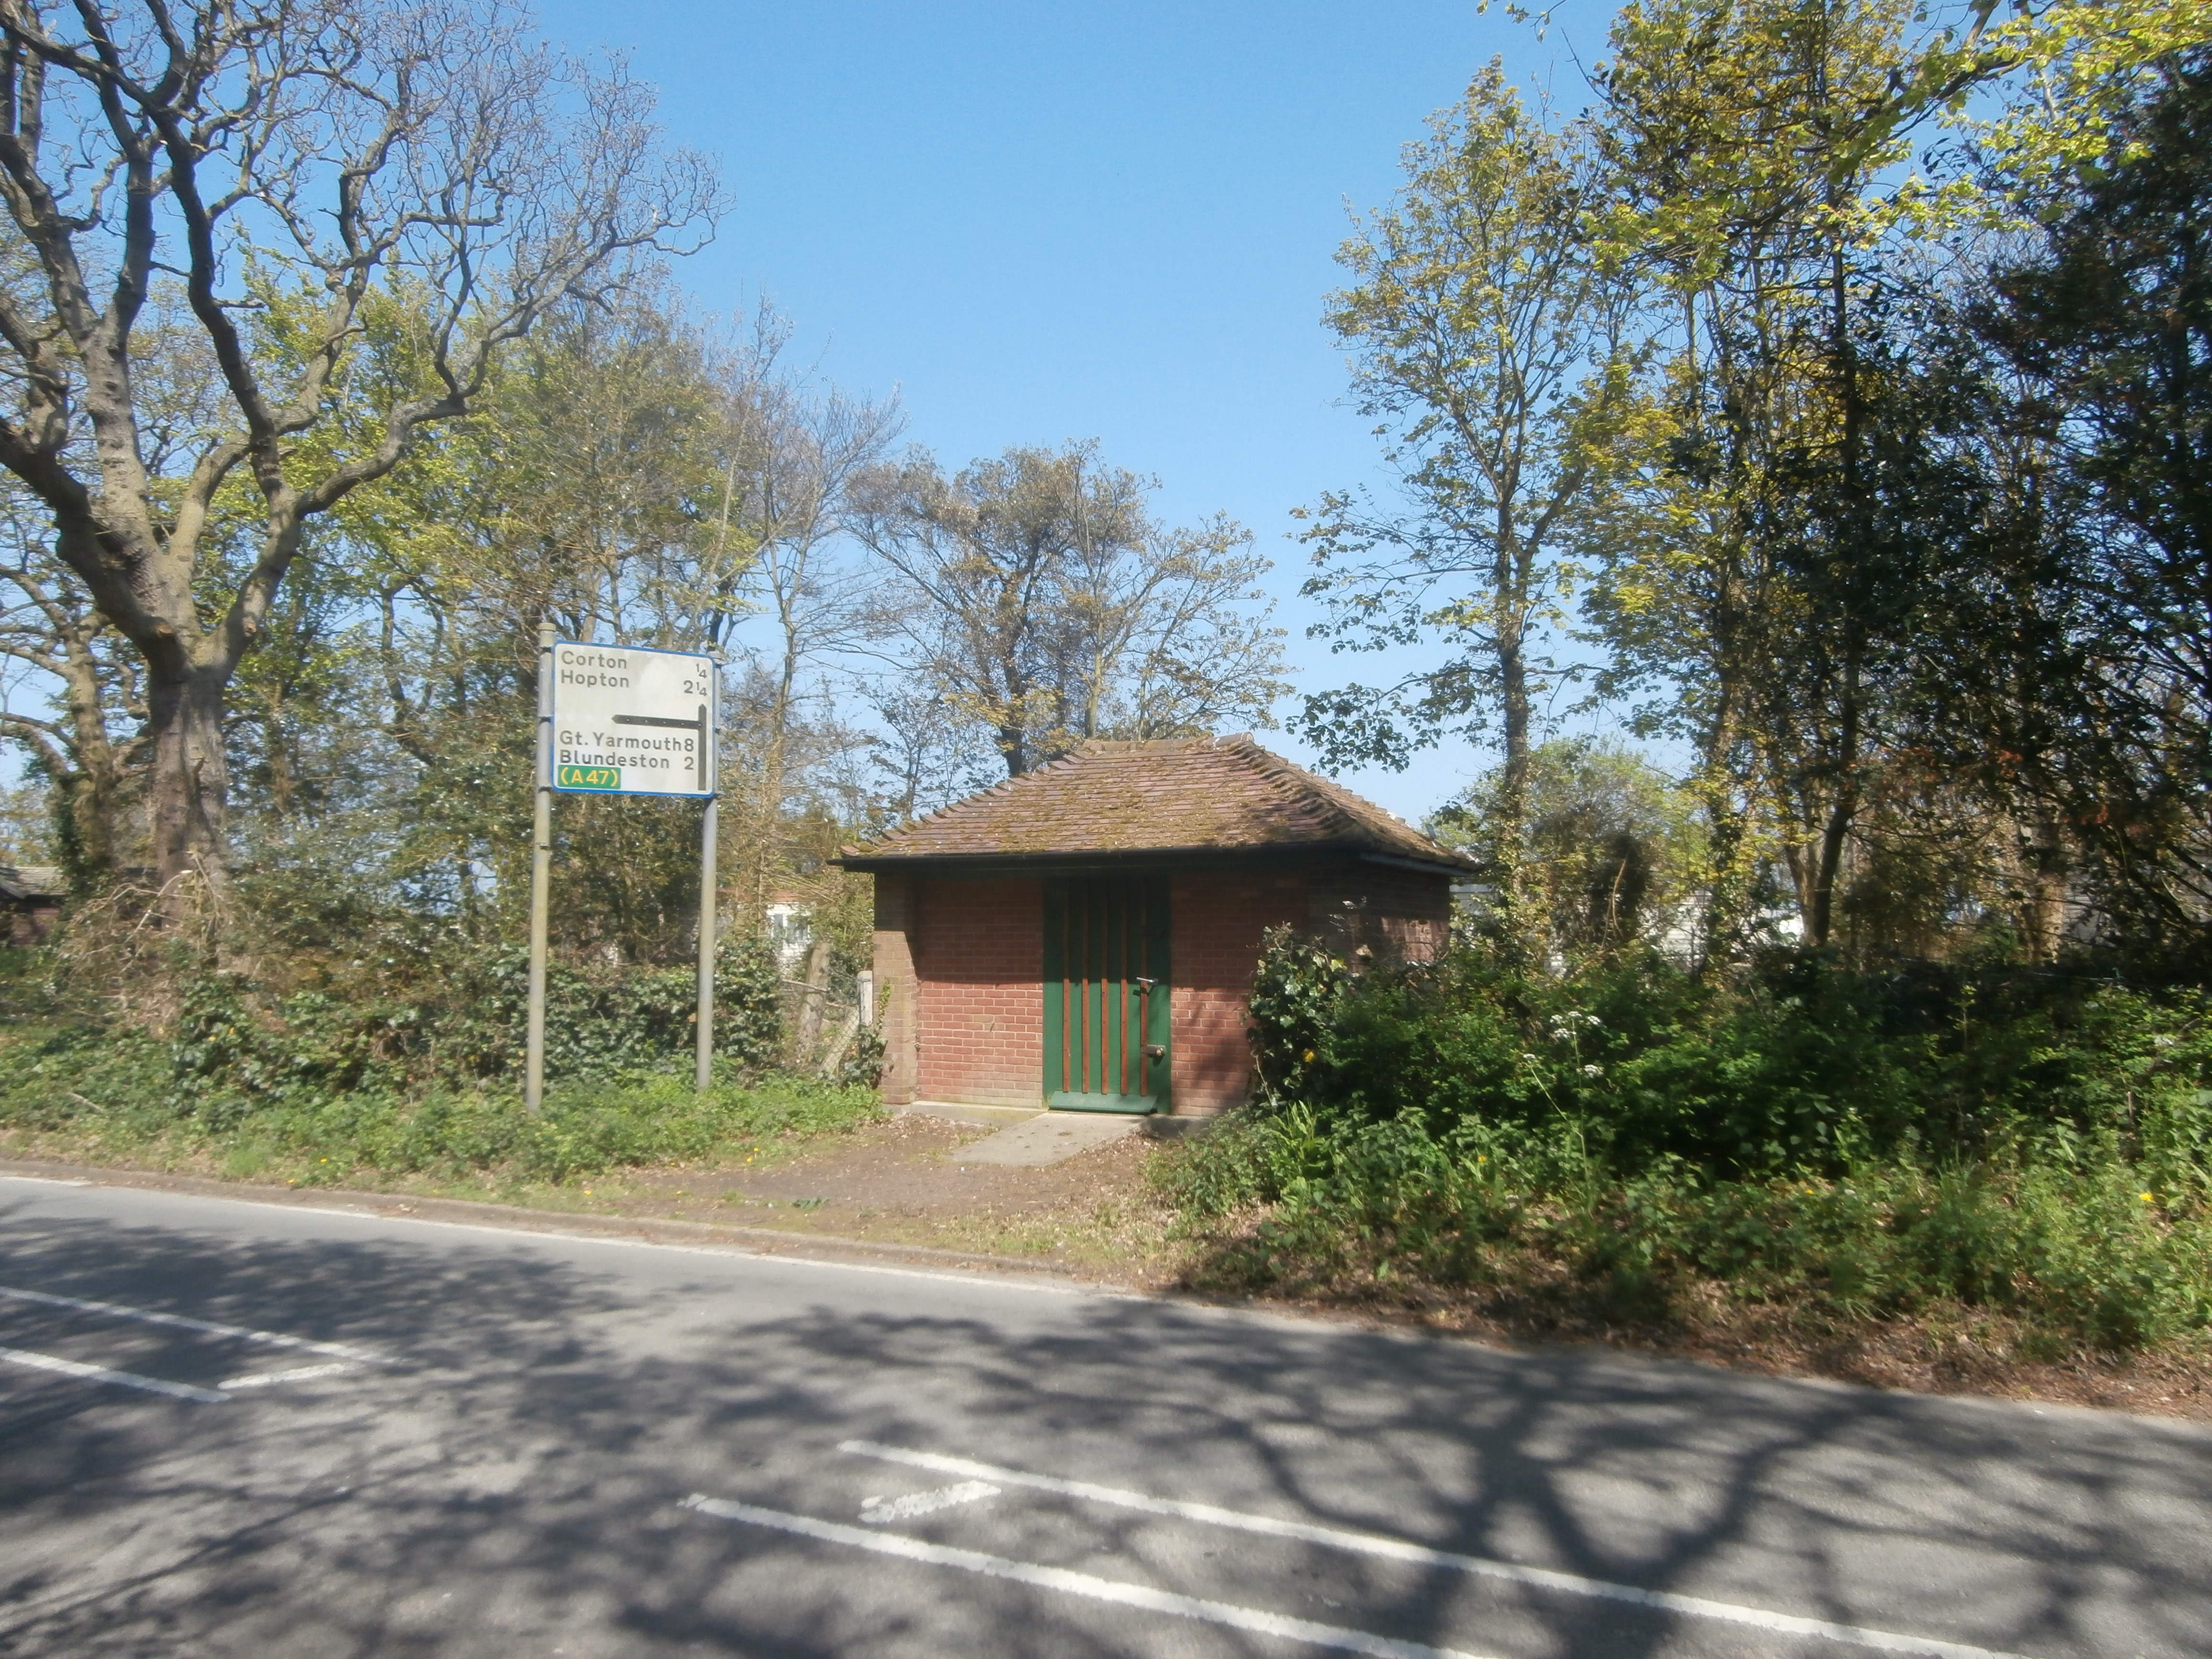 The Old Bus Shelter